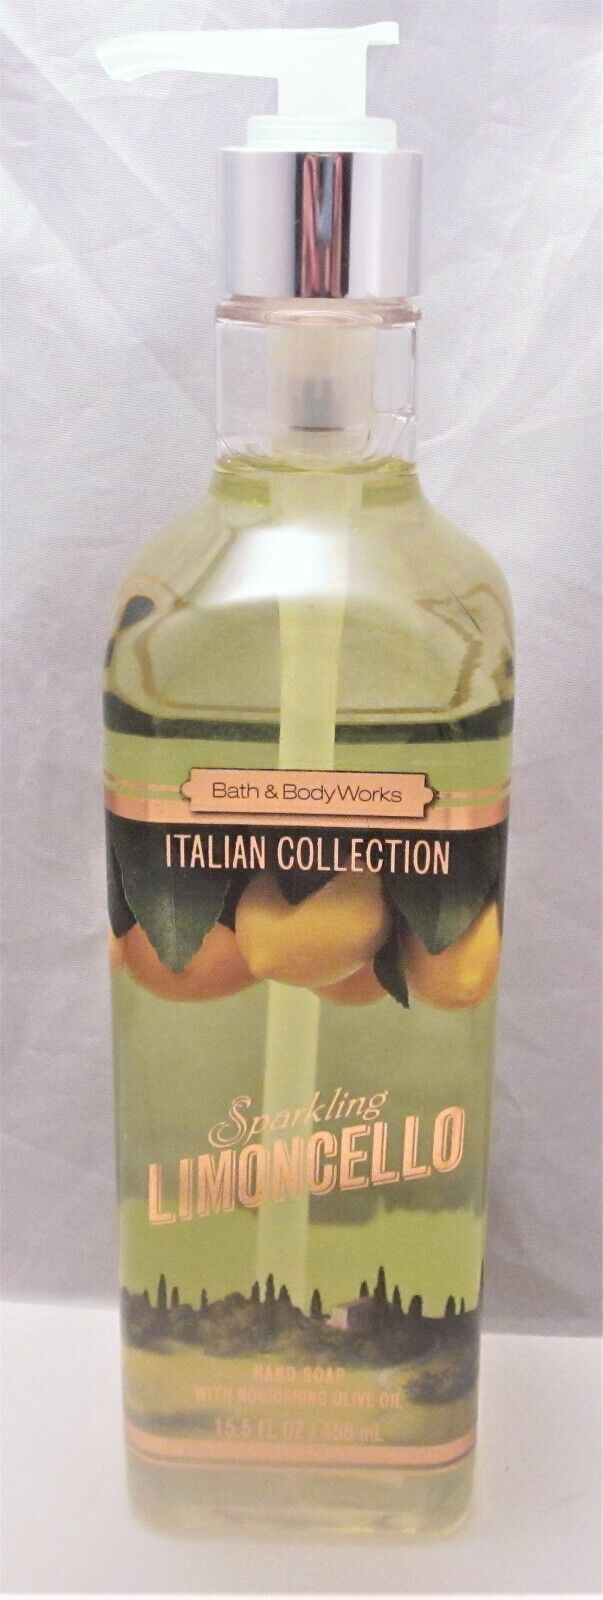 Bath and Body Works Sparkling Limoncello Luxury Olive Oil Ha